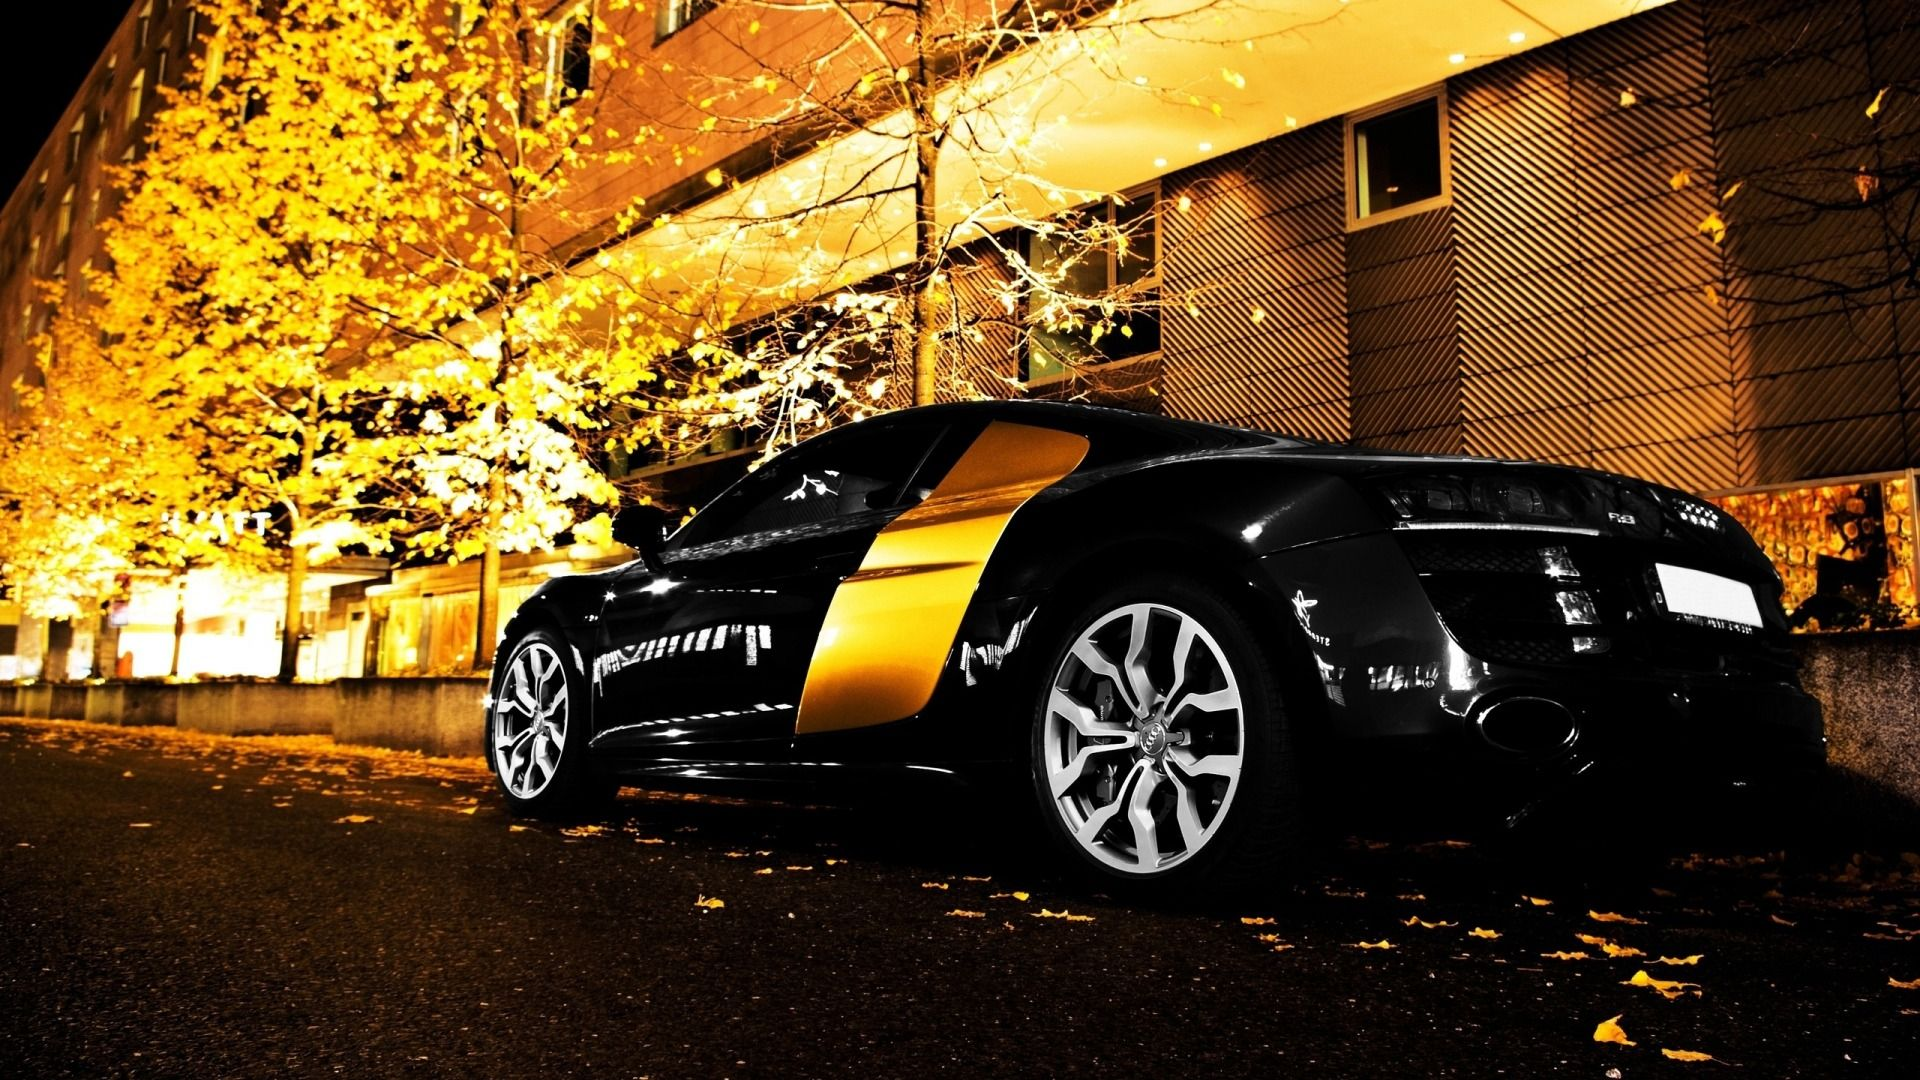 Awesome Audi R8 Sport Hd Wallpapers 1080p Cars Rides I Want Cars